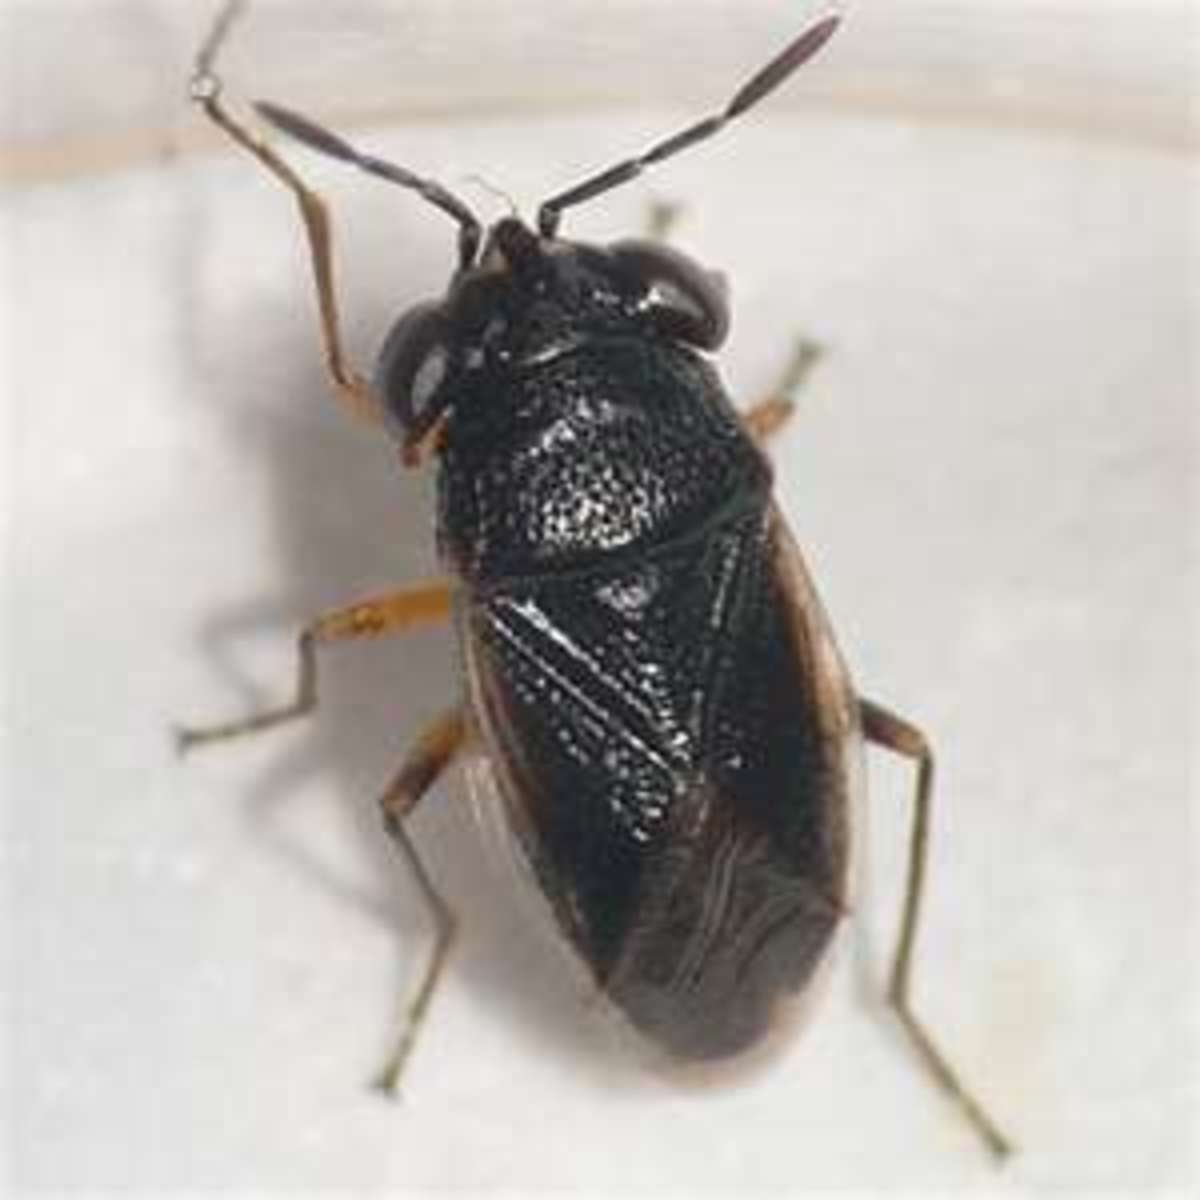 Bigeyed bugs are usually black or gray.